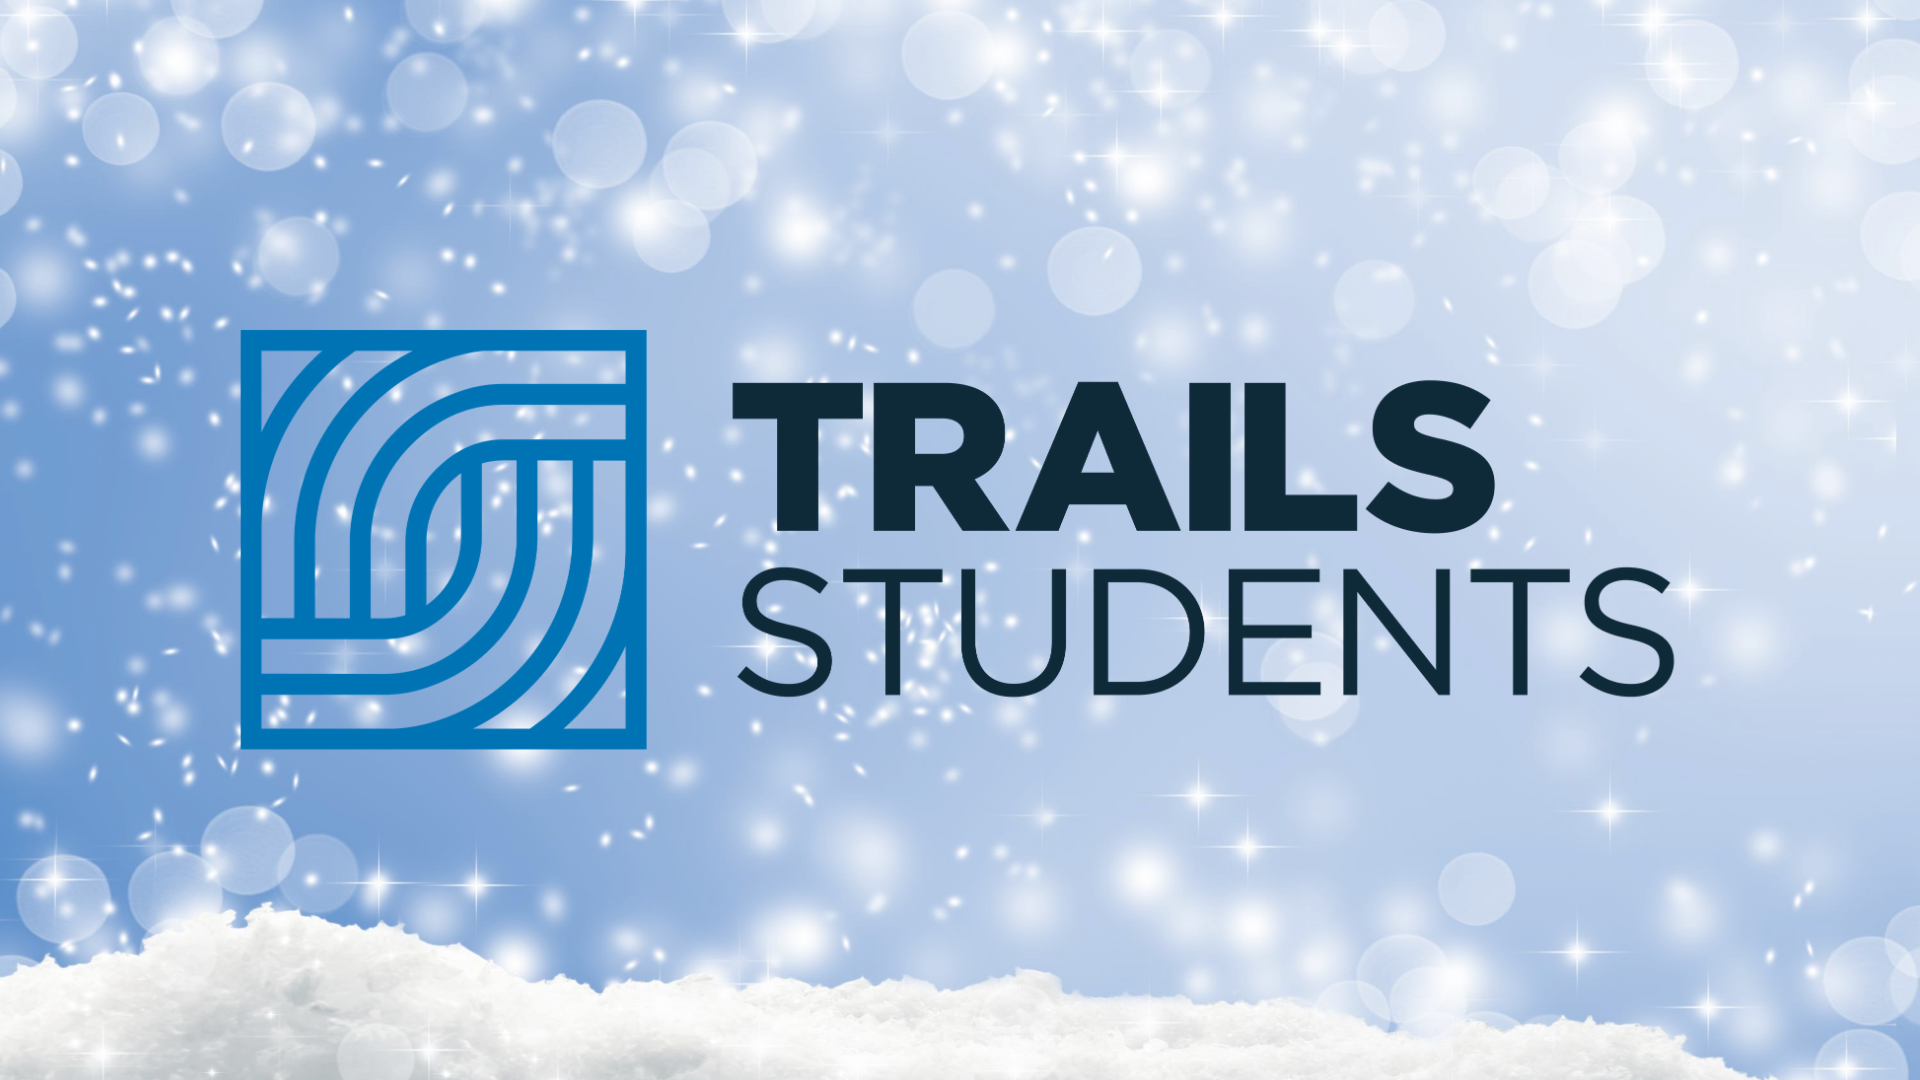 Trails Students Winter 2020 image